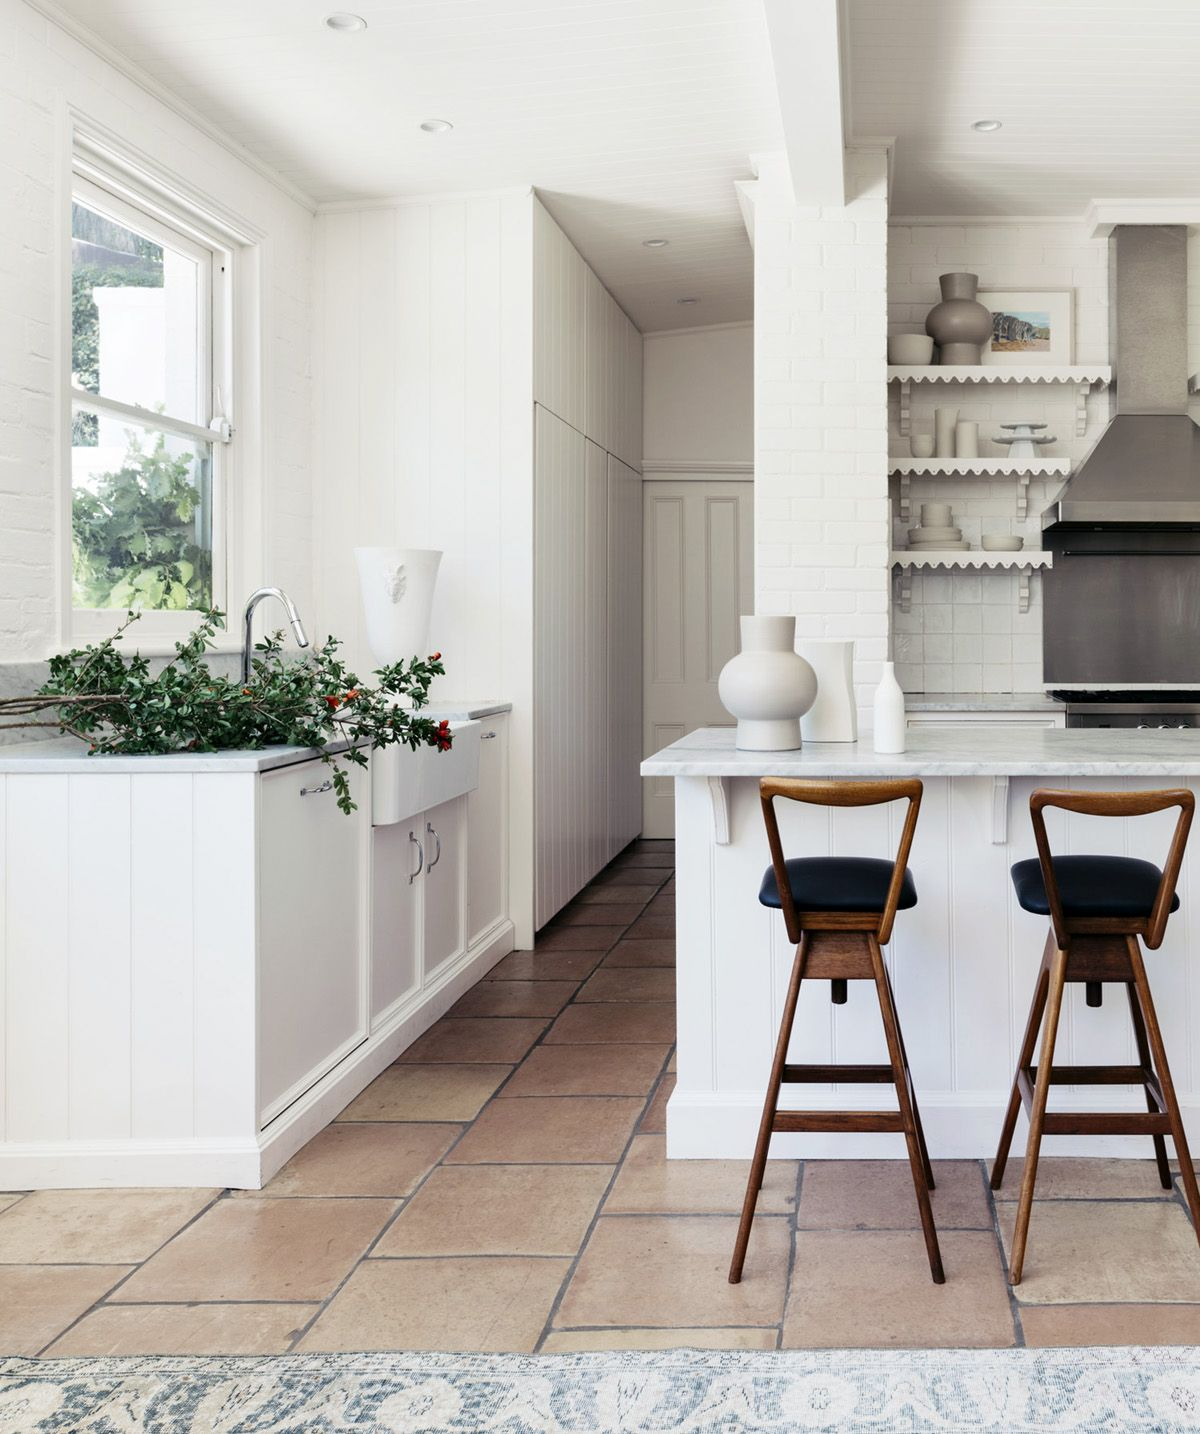 touch of modern in the stools this classic kitchen house tour on coco kelley also home with touches romance rh pinterest